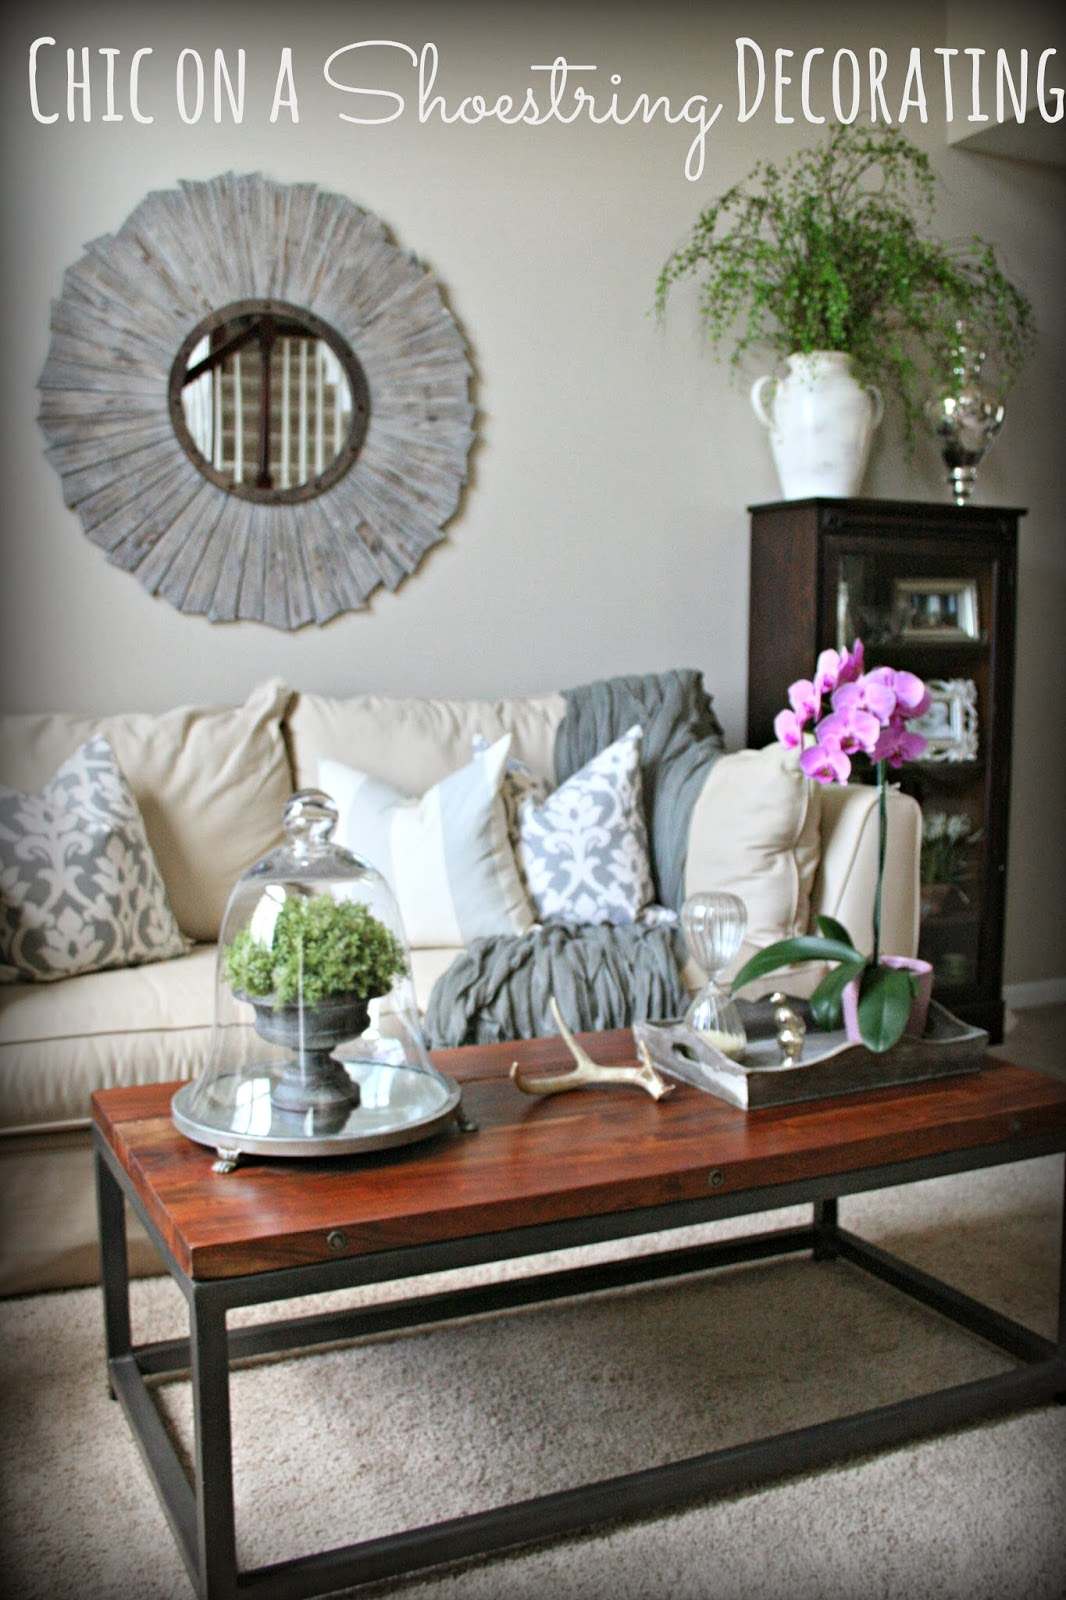 chic on a shoestring decorating living room makeover on a